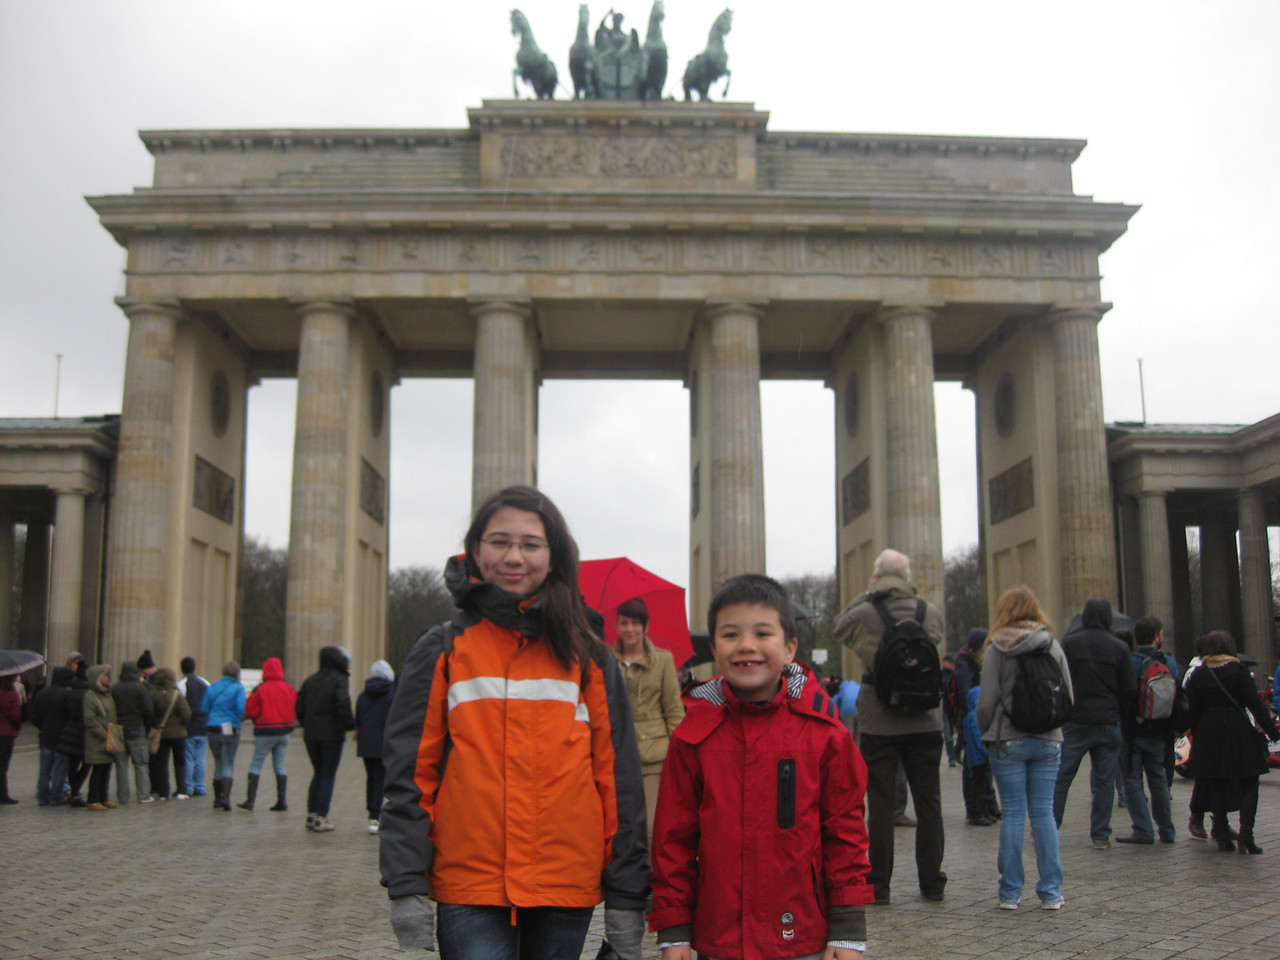 on the second day, we visited the Brandenburger Tor. A short visit, as it was cold and wet outside.